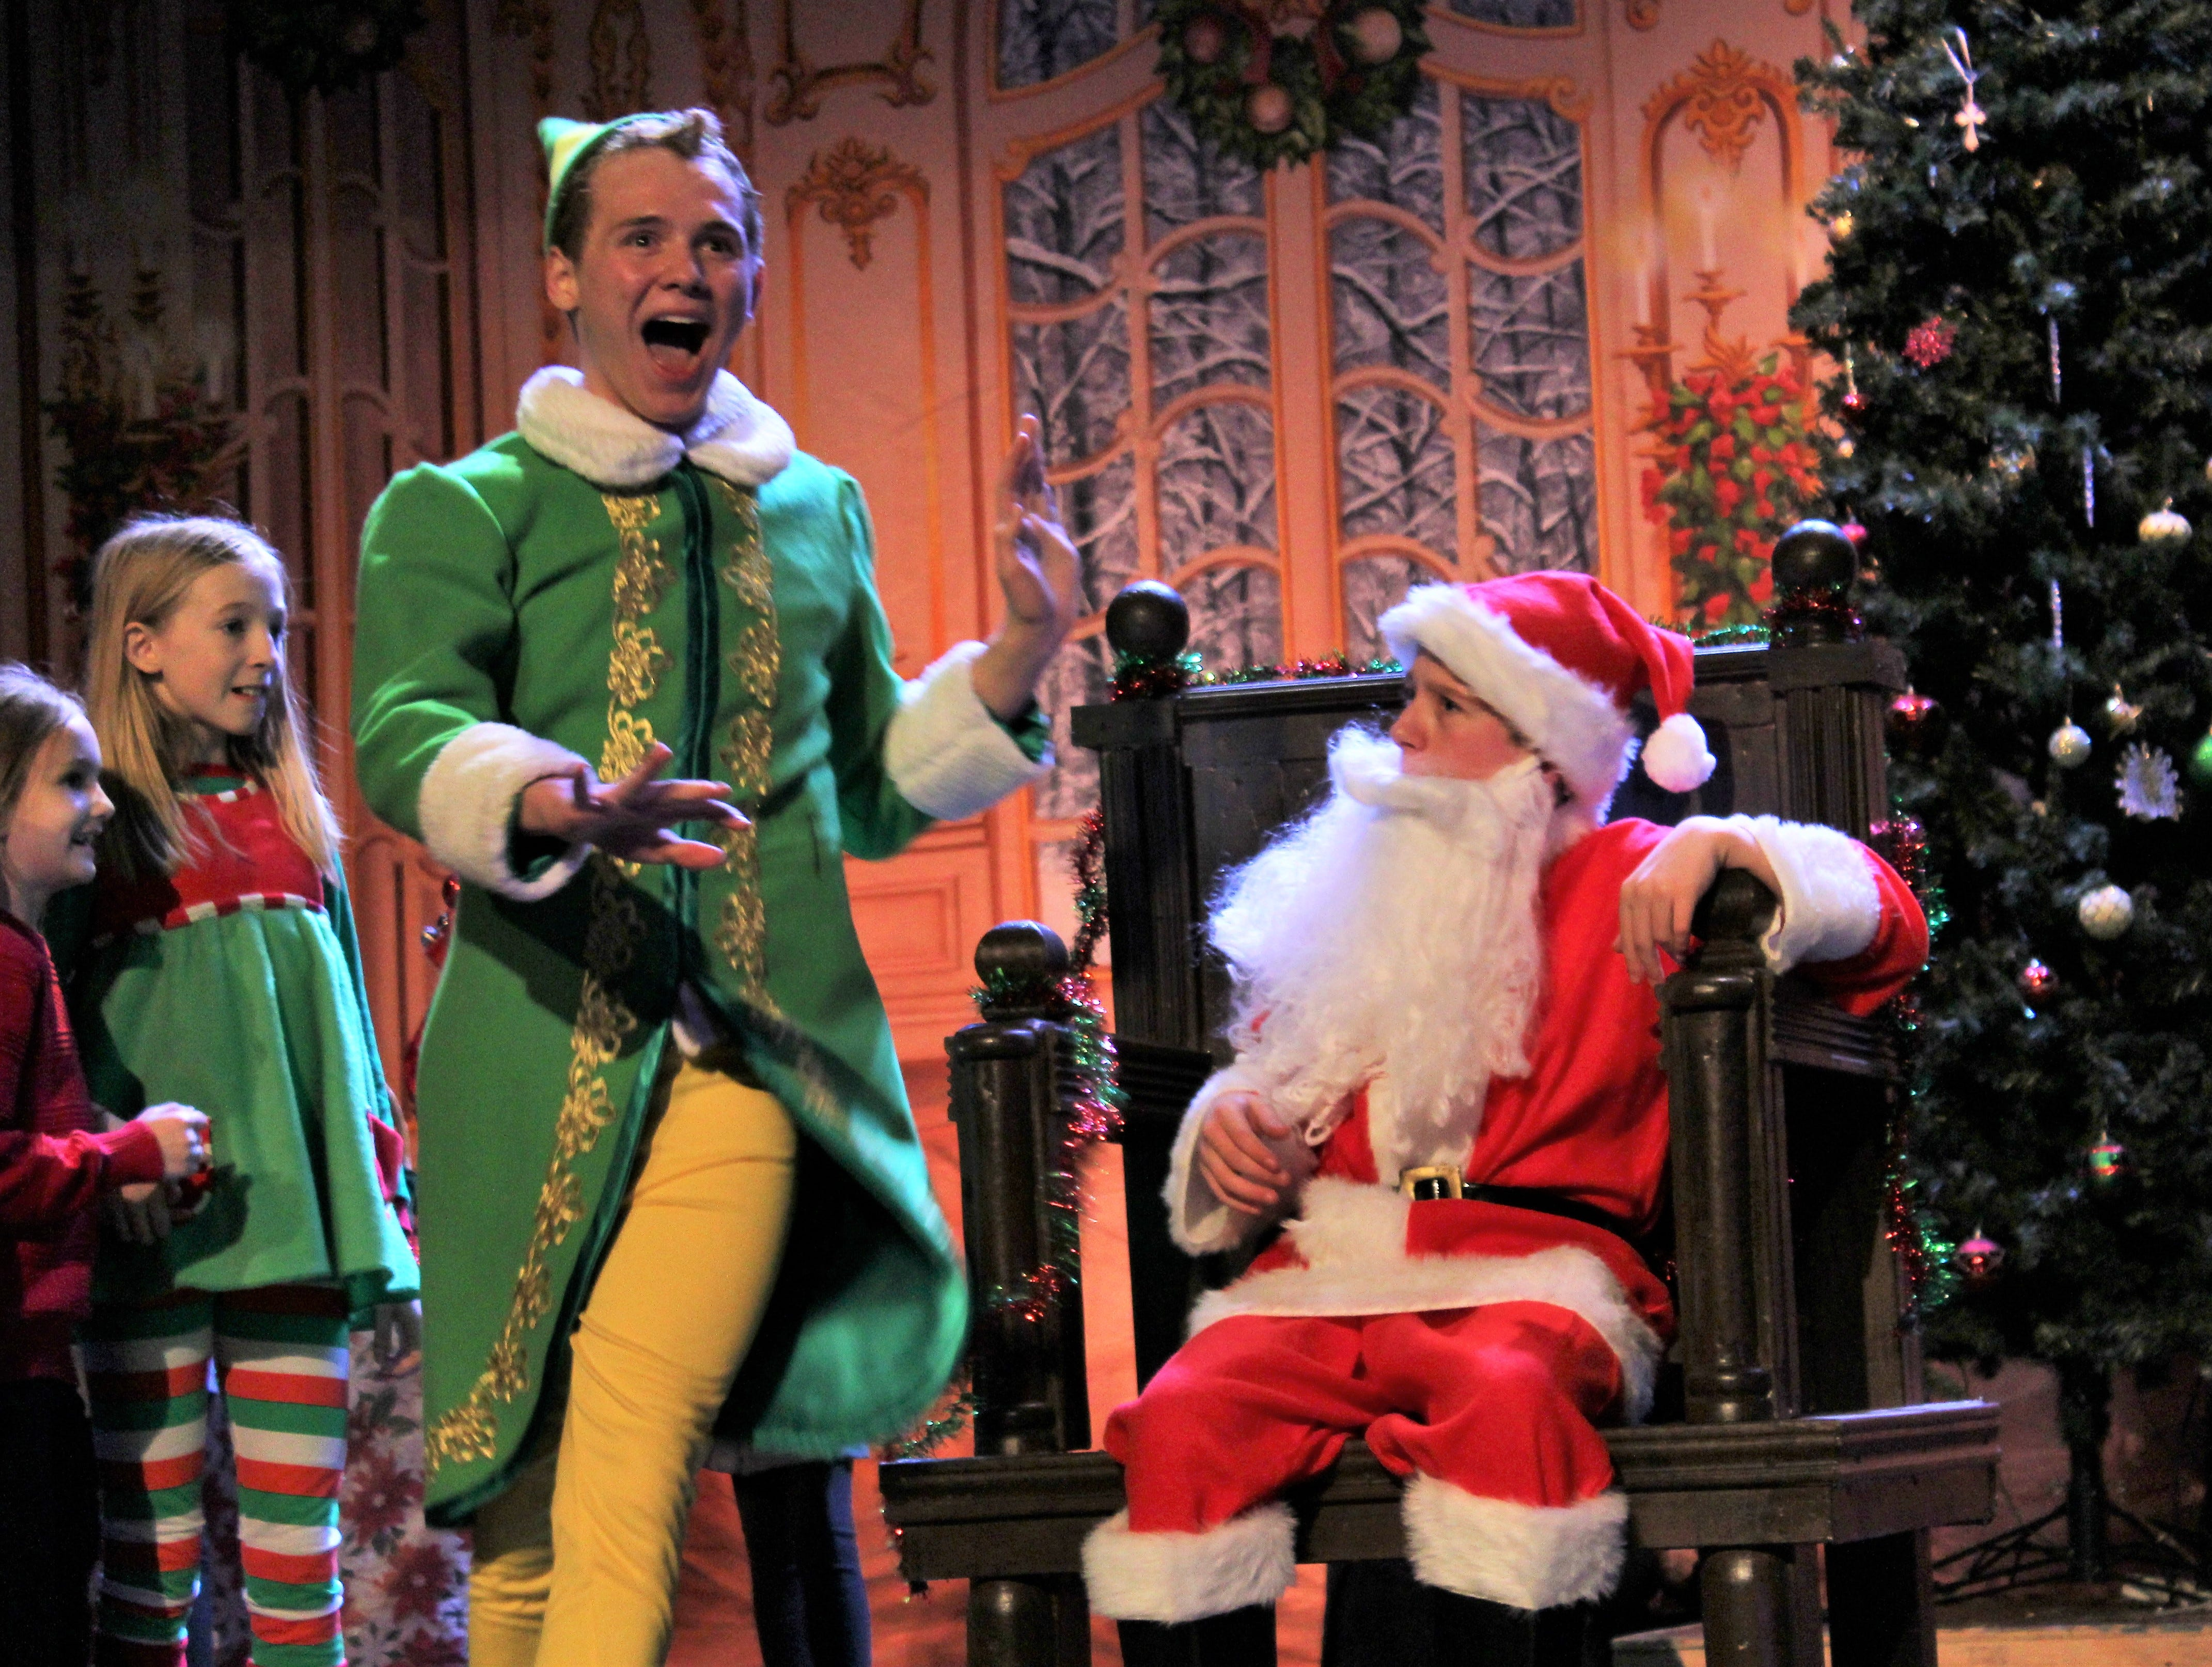 "Buddy (Brent Bardin) disrupts time with Santa (Jax Melbourne) in a New York City department store with his claims that Santa is fake in this rehearsal scene from ""El, the Musical, Jr."" at the Paramount Theatre."